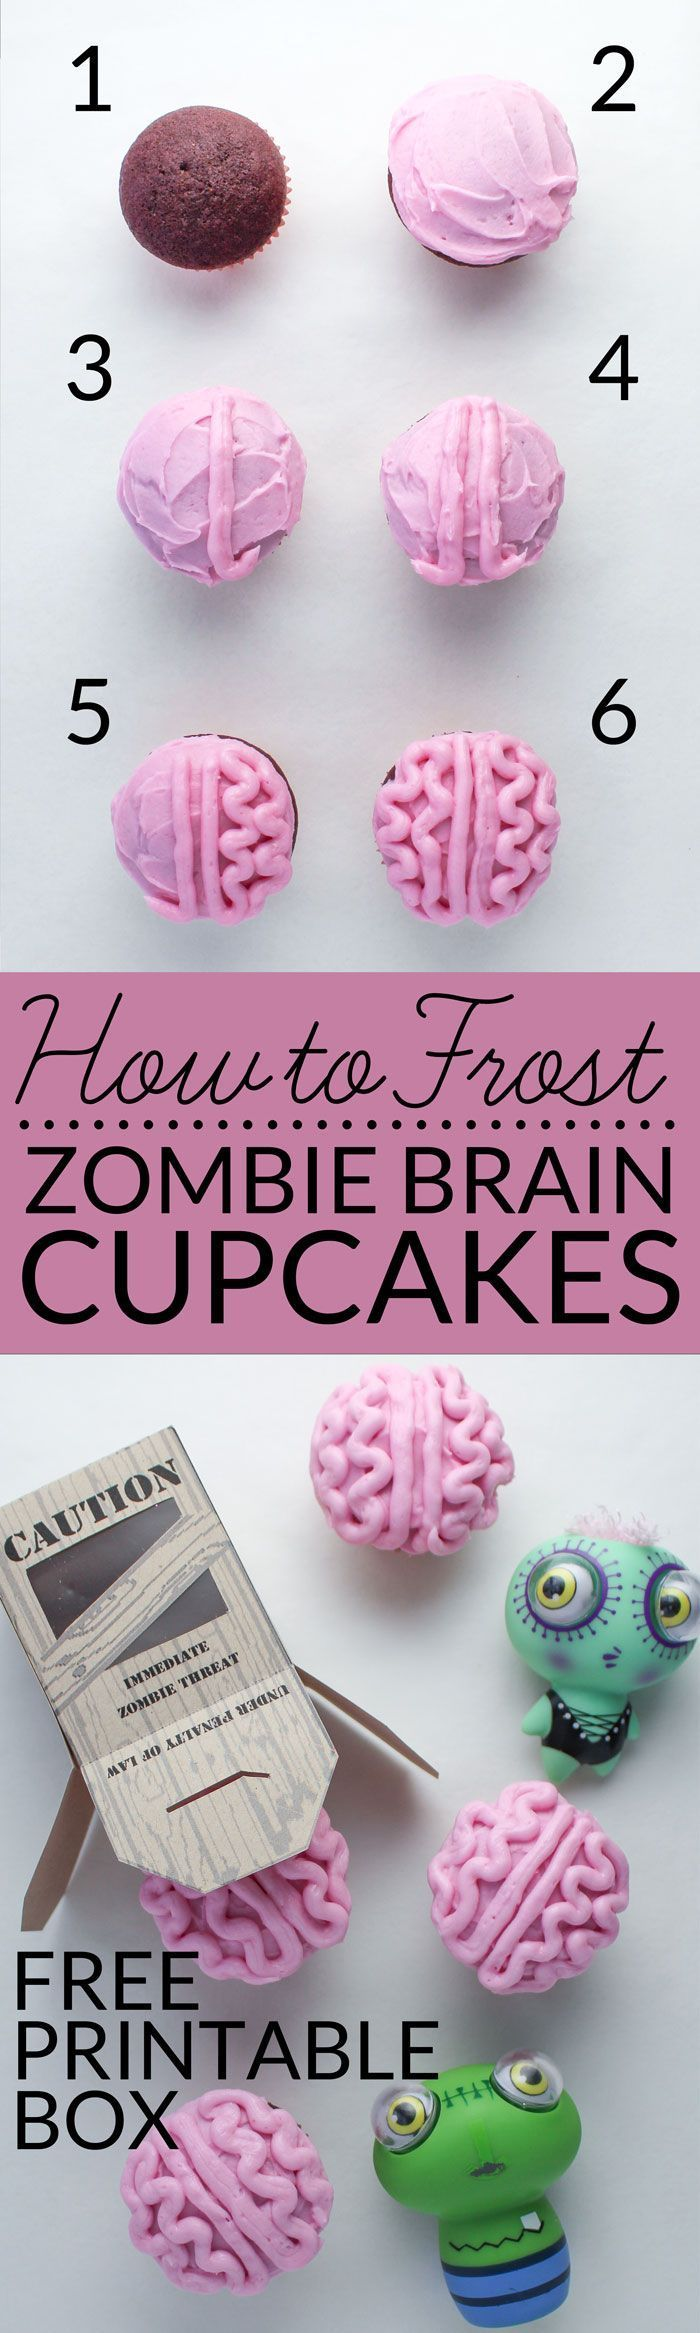 Learn how to frost brain cupcakes with this easy tutorial. You can celebrate everything zombie and goolish with this all natural zombie brain cupcake recipe that contain no artificial food coloring! #thewalkingdead #Halloween #zombies